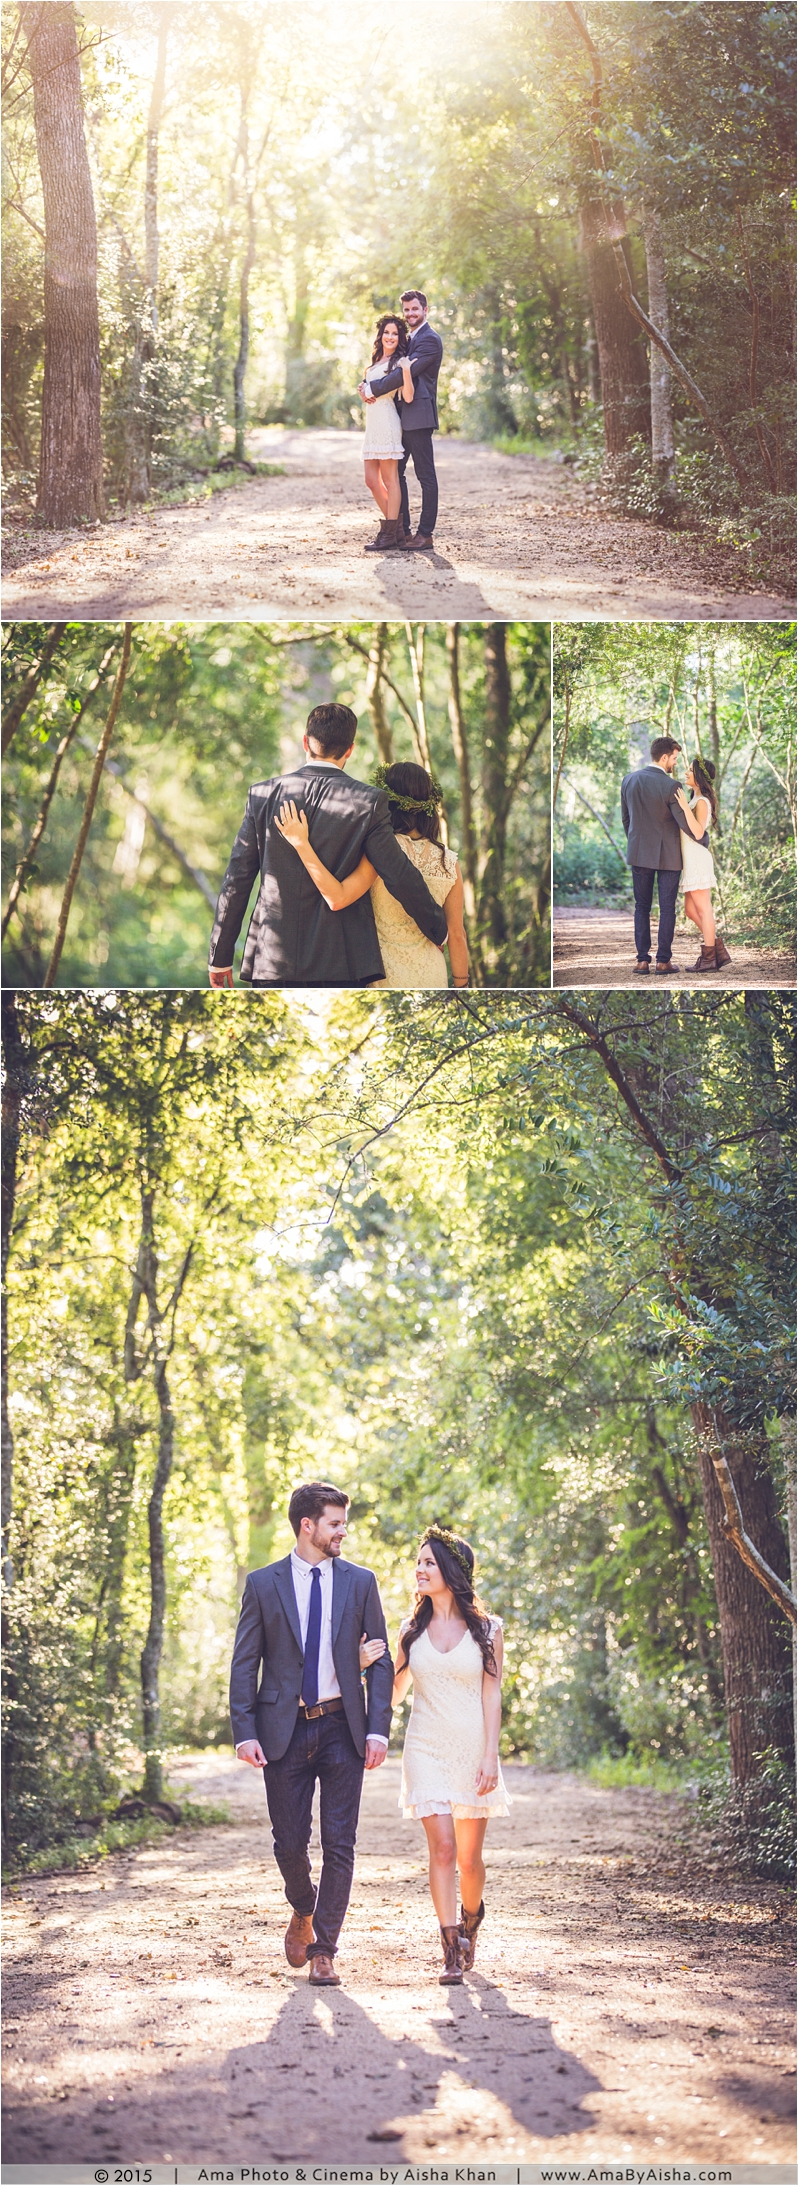 ©2015 Bohemian engagement portraits from www.AmaByAisha.com